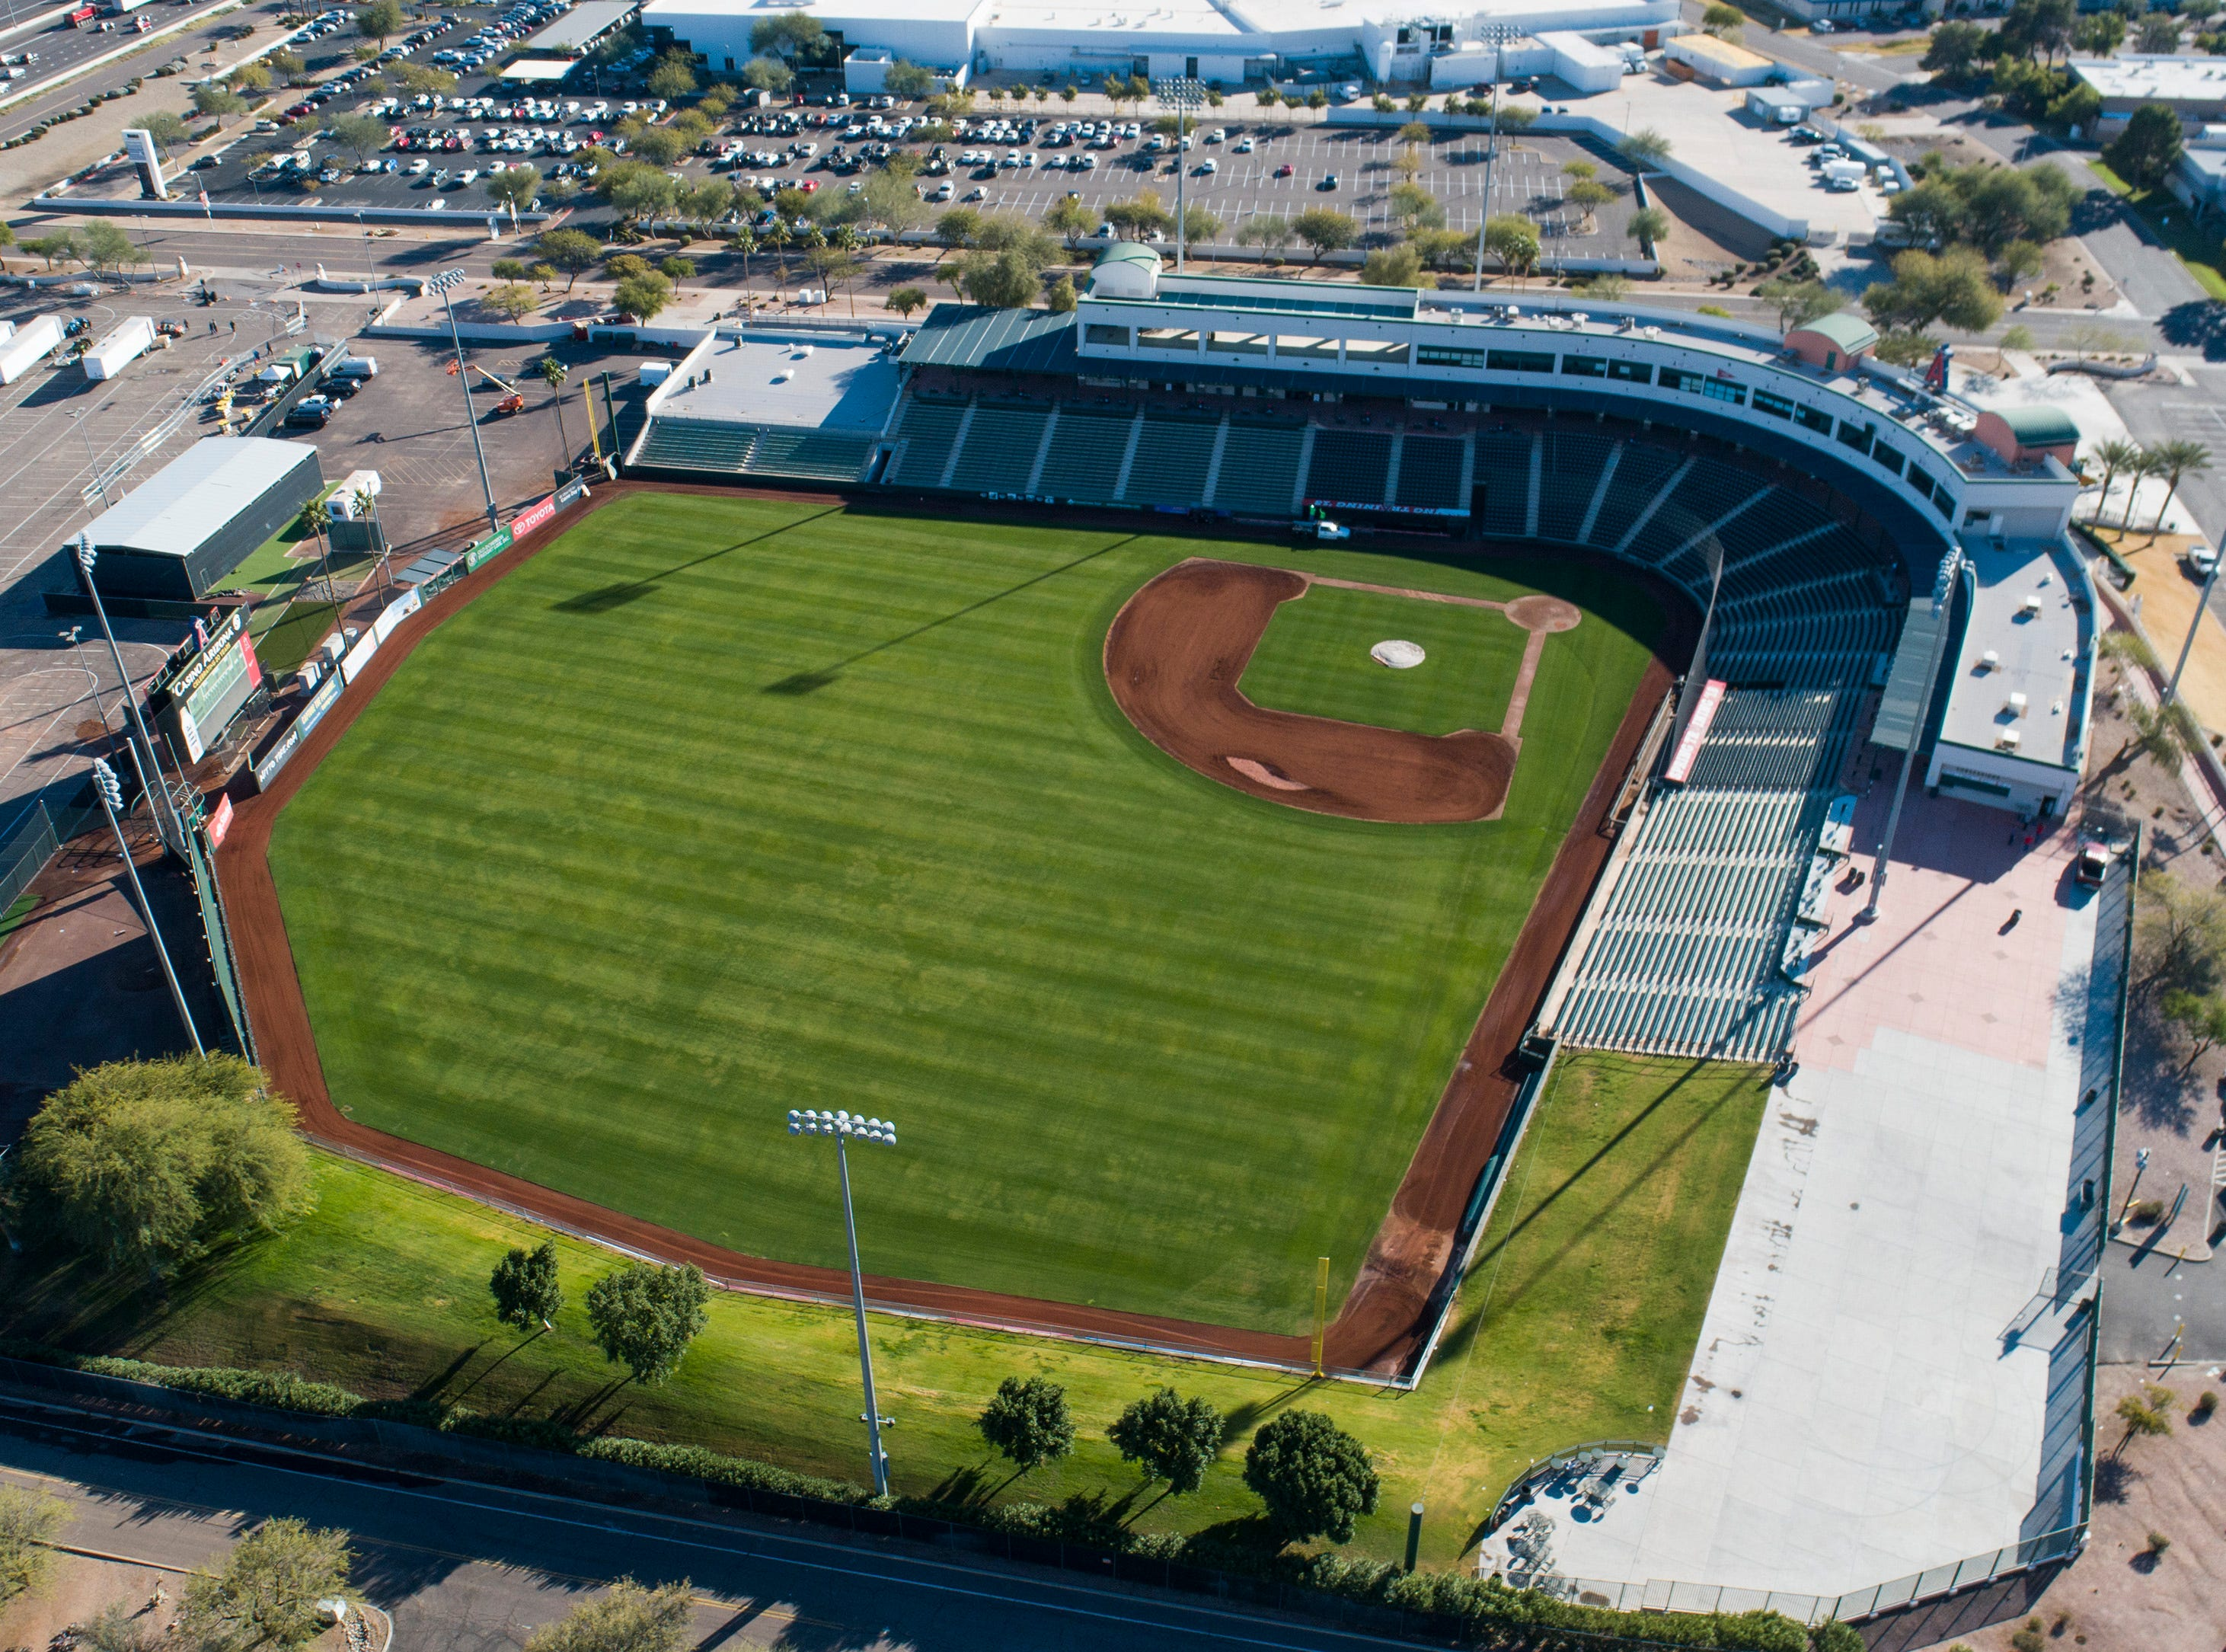 Aerial drone view of Tempe Diablo Stadium, Cactus League home of the Anaheim Angels, in Tempe, Arizona January 9, 2019.